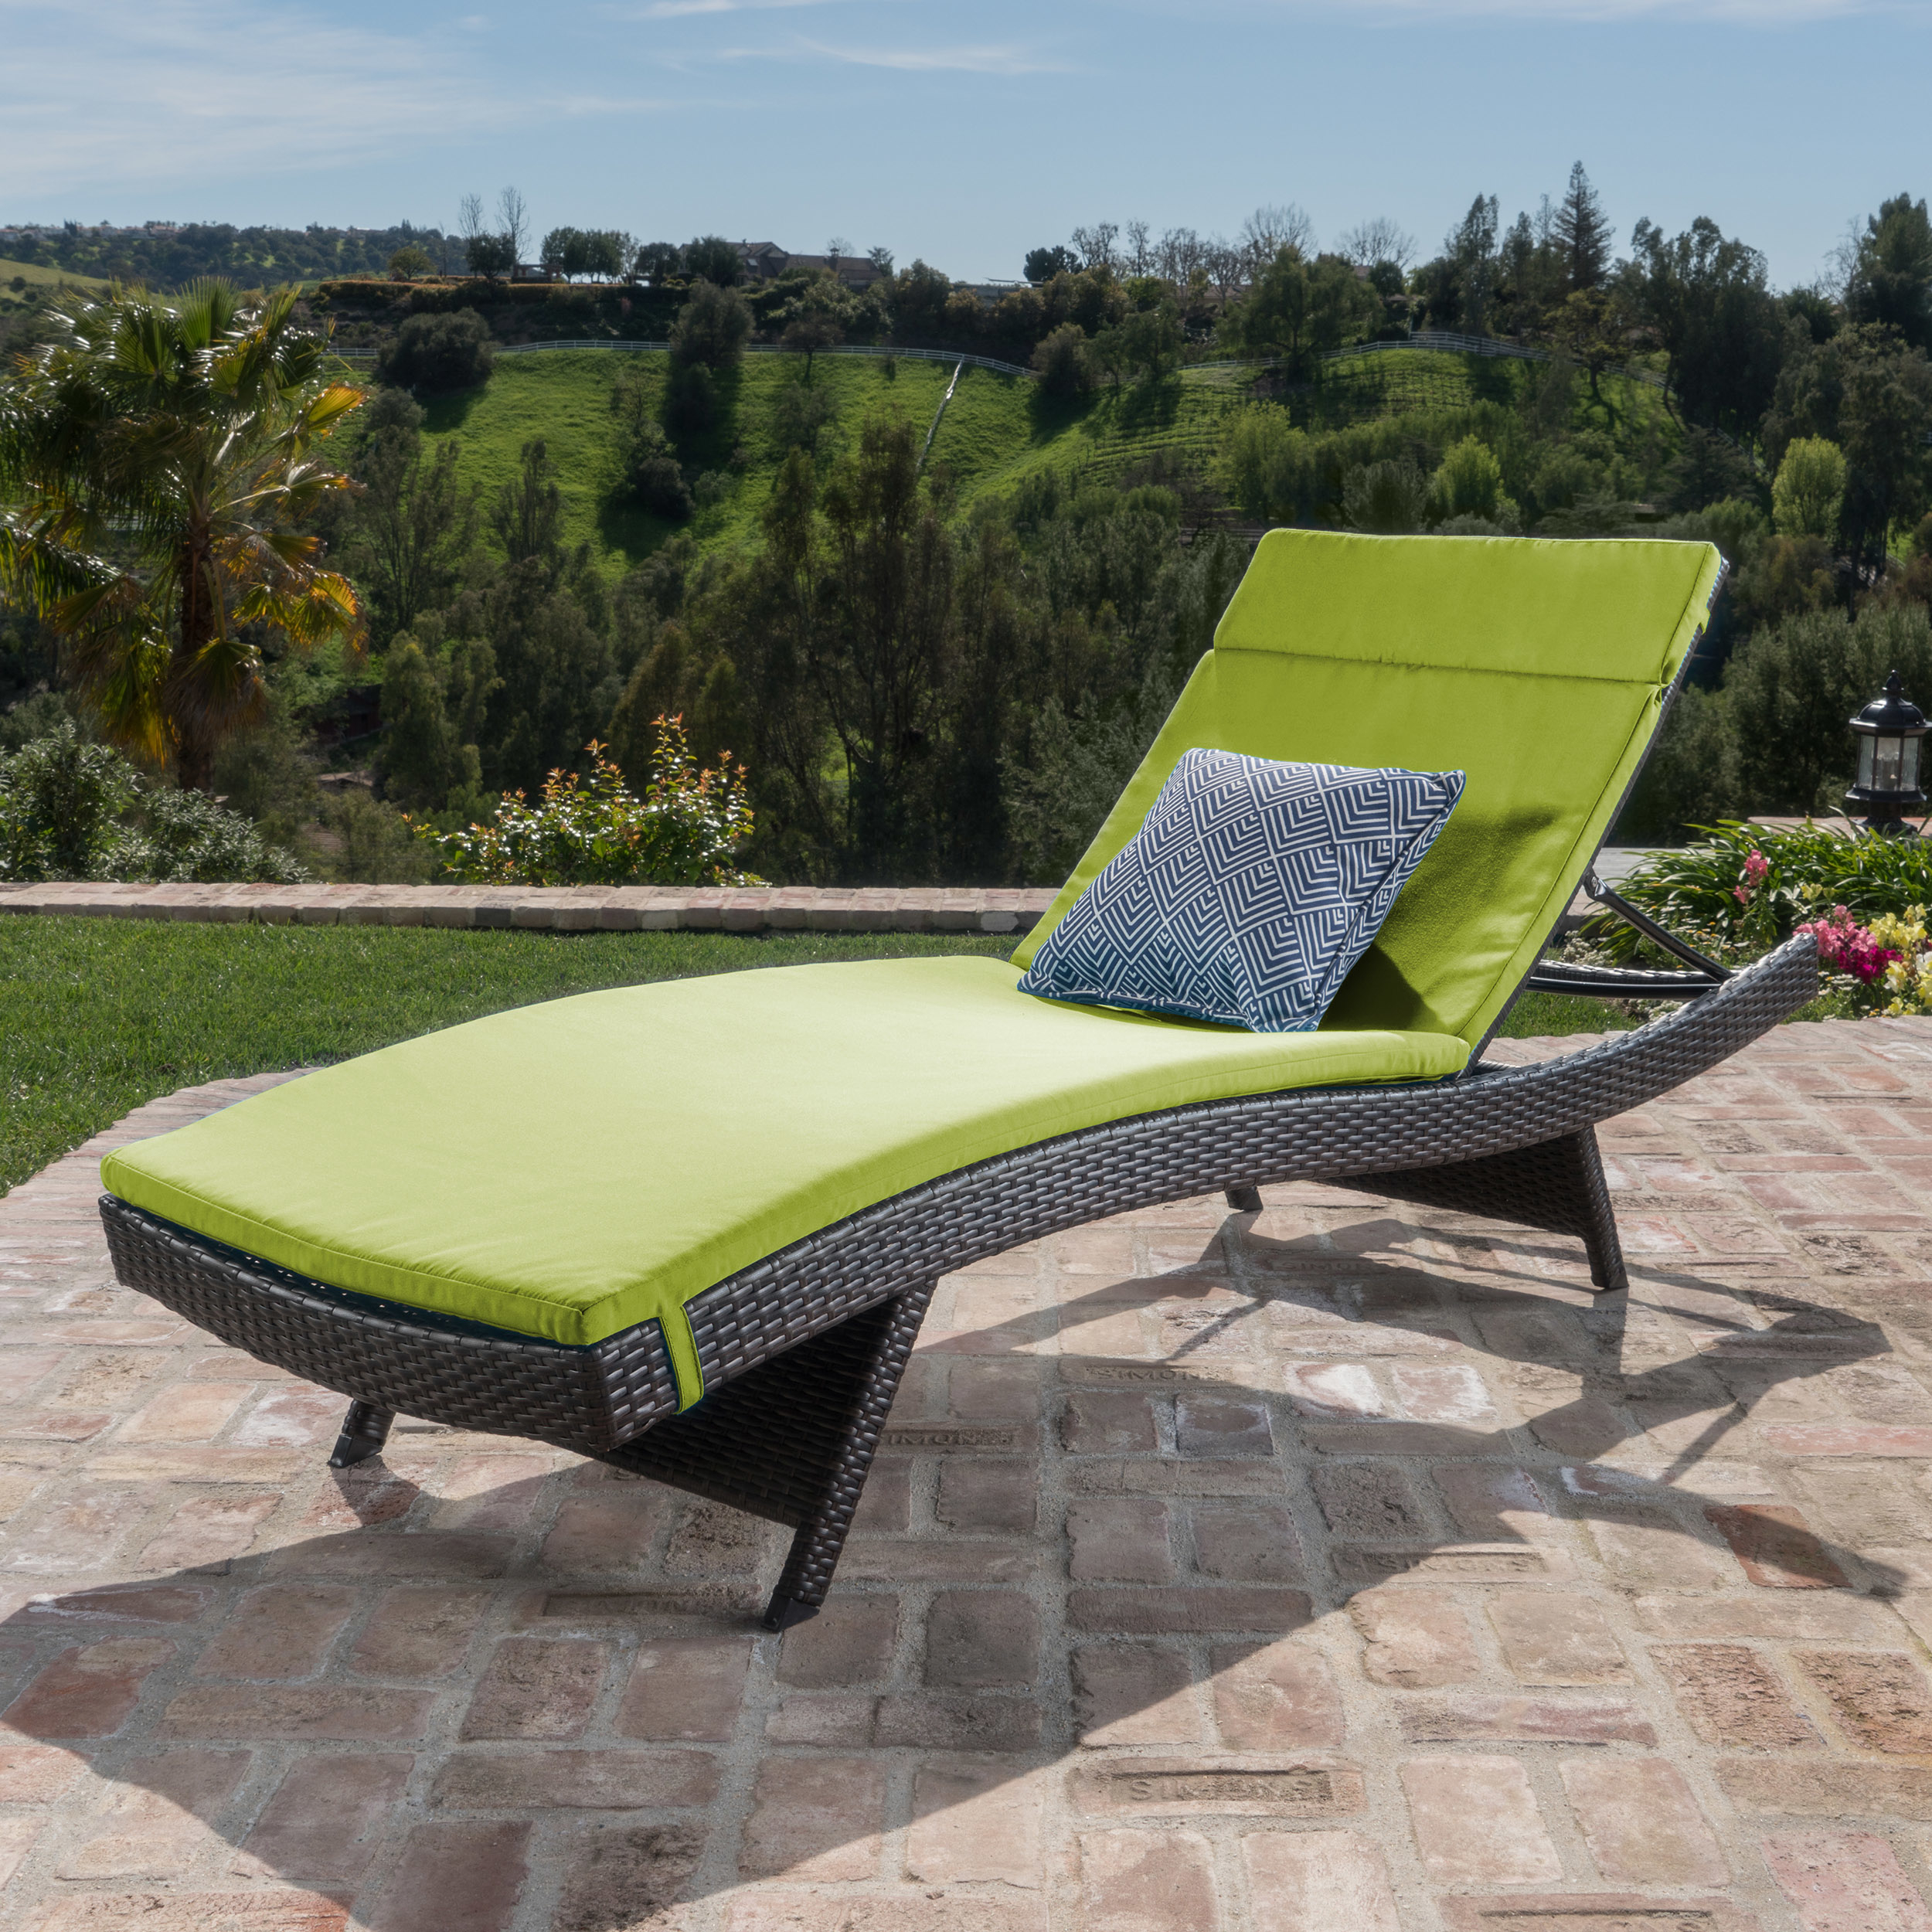 Lakeport Outdoor Adjustable Chaise Lounge Chair w/ Cushion (5)